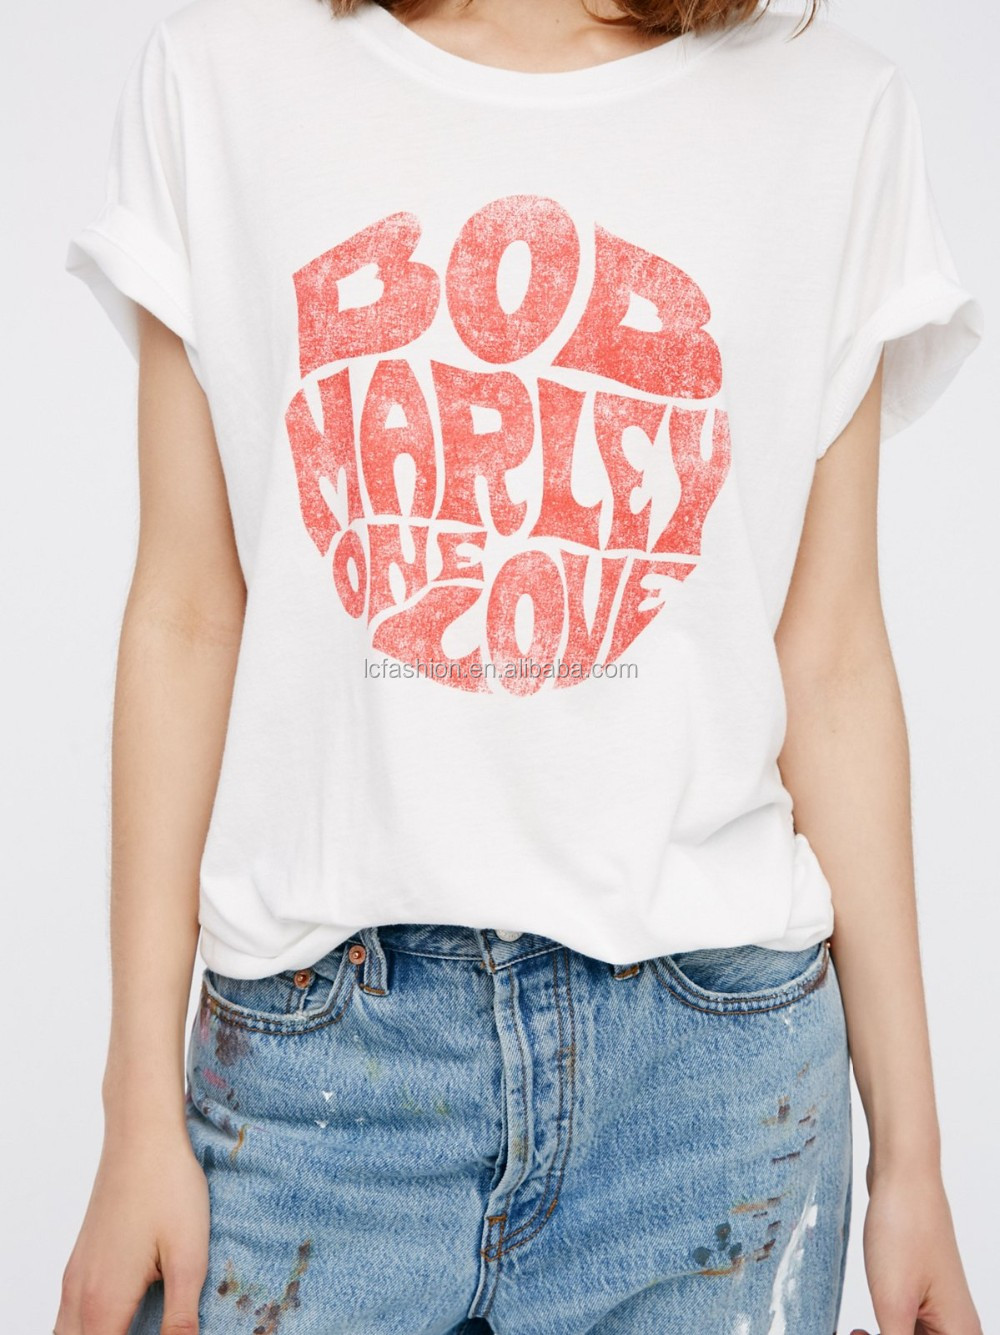 Shirt design latest 2017 - 2017 Latest Shirt Designs For Women With Short Sleeve And Custom T Shirt Printing